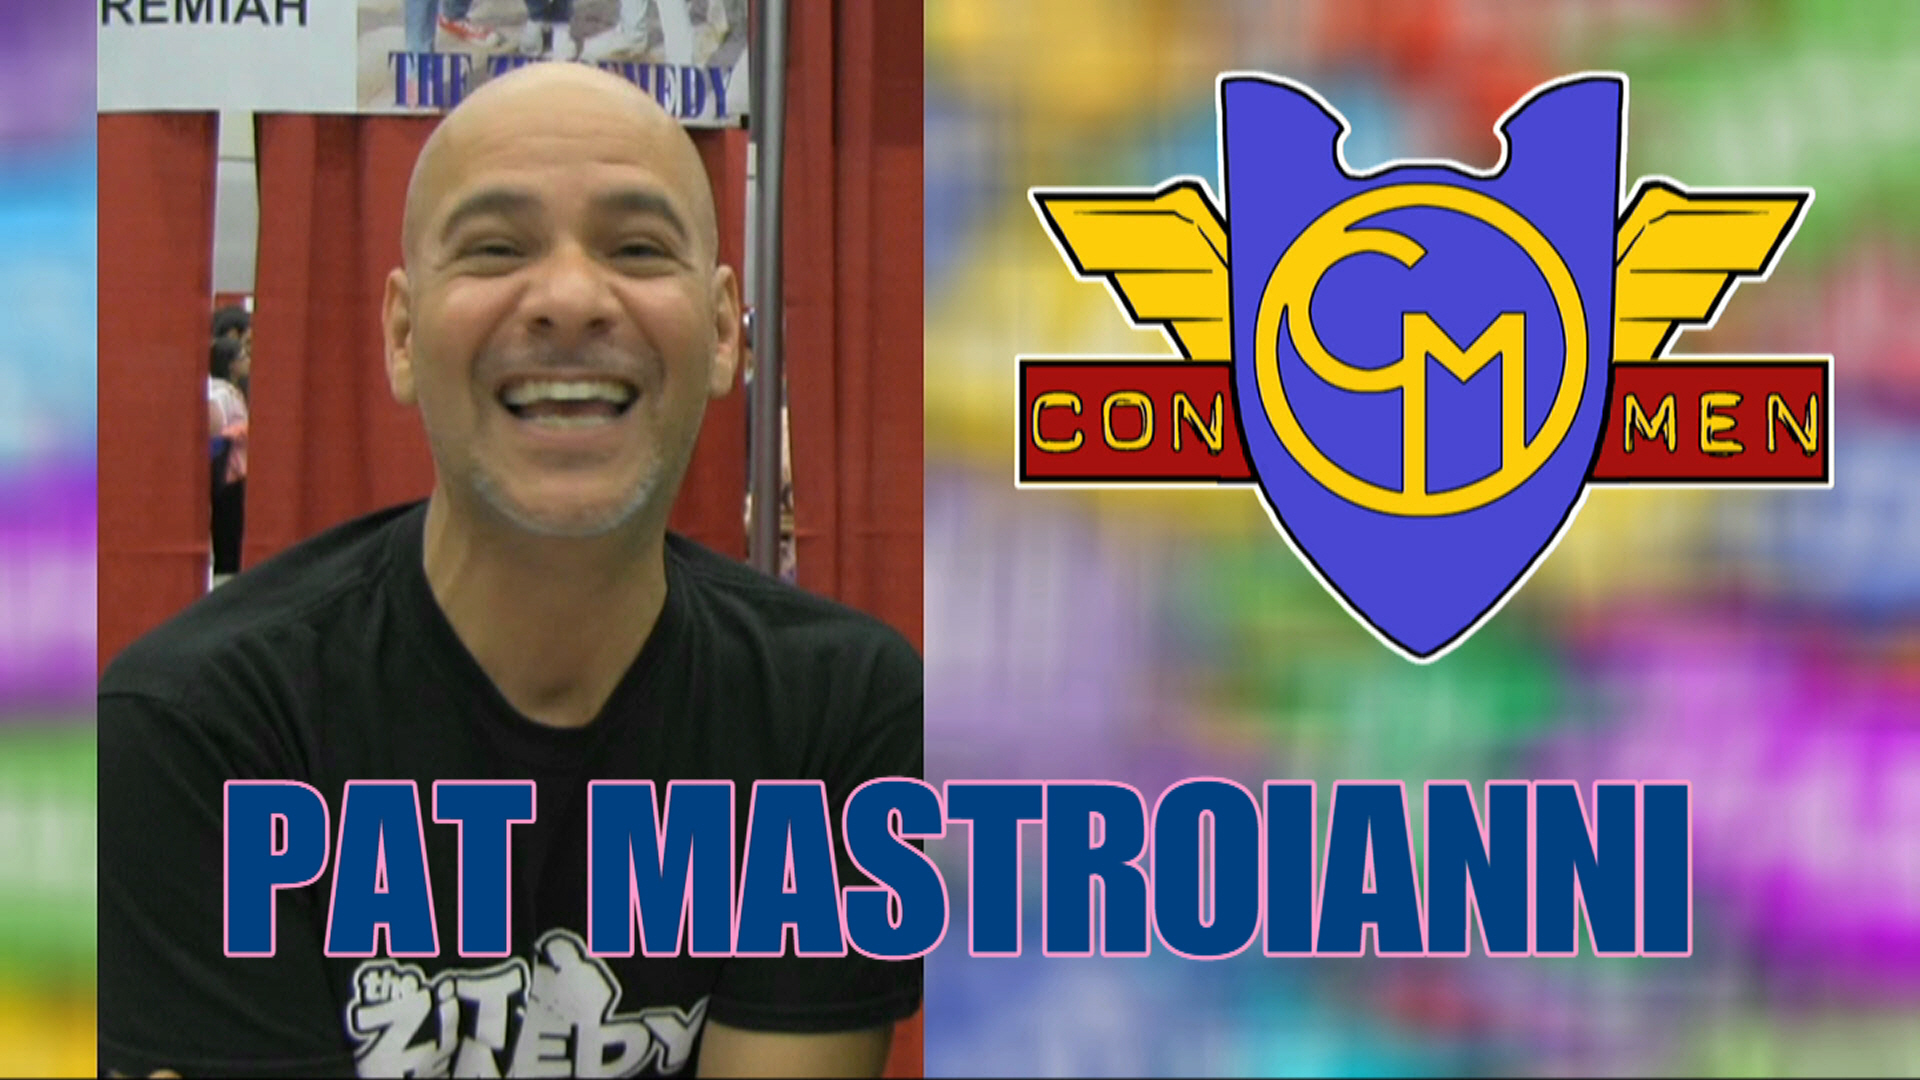 Con Men Interviews: Actor Pat Mastroianni - Joey Jeremiah from Degrassi Junior High